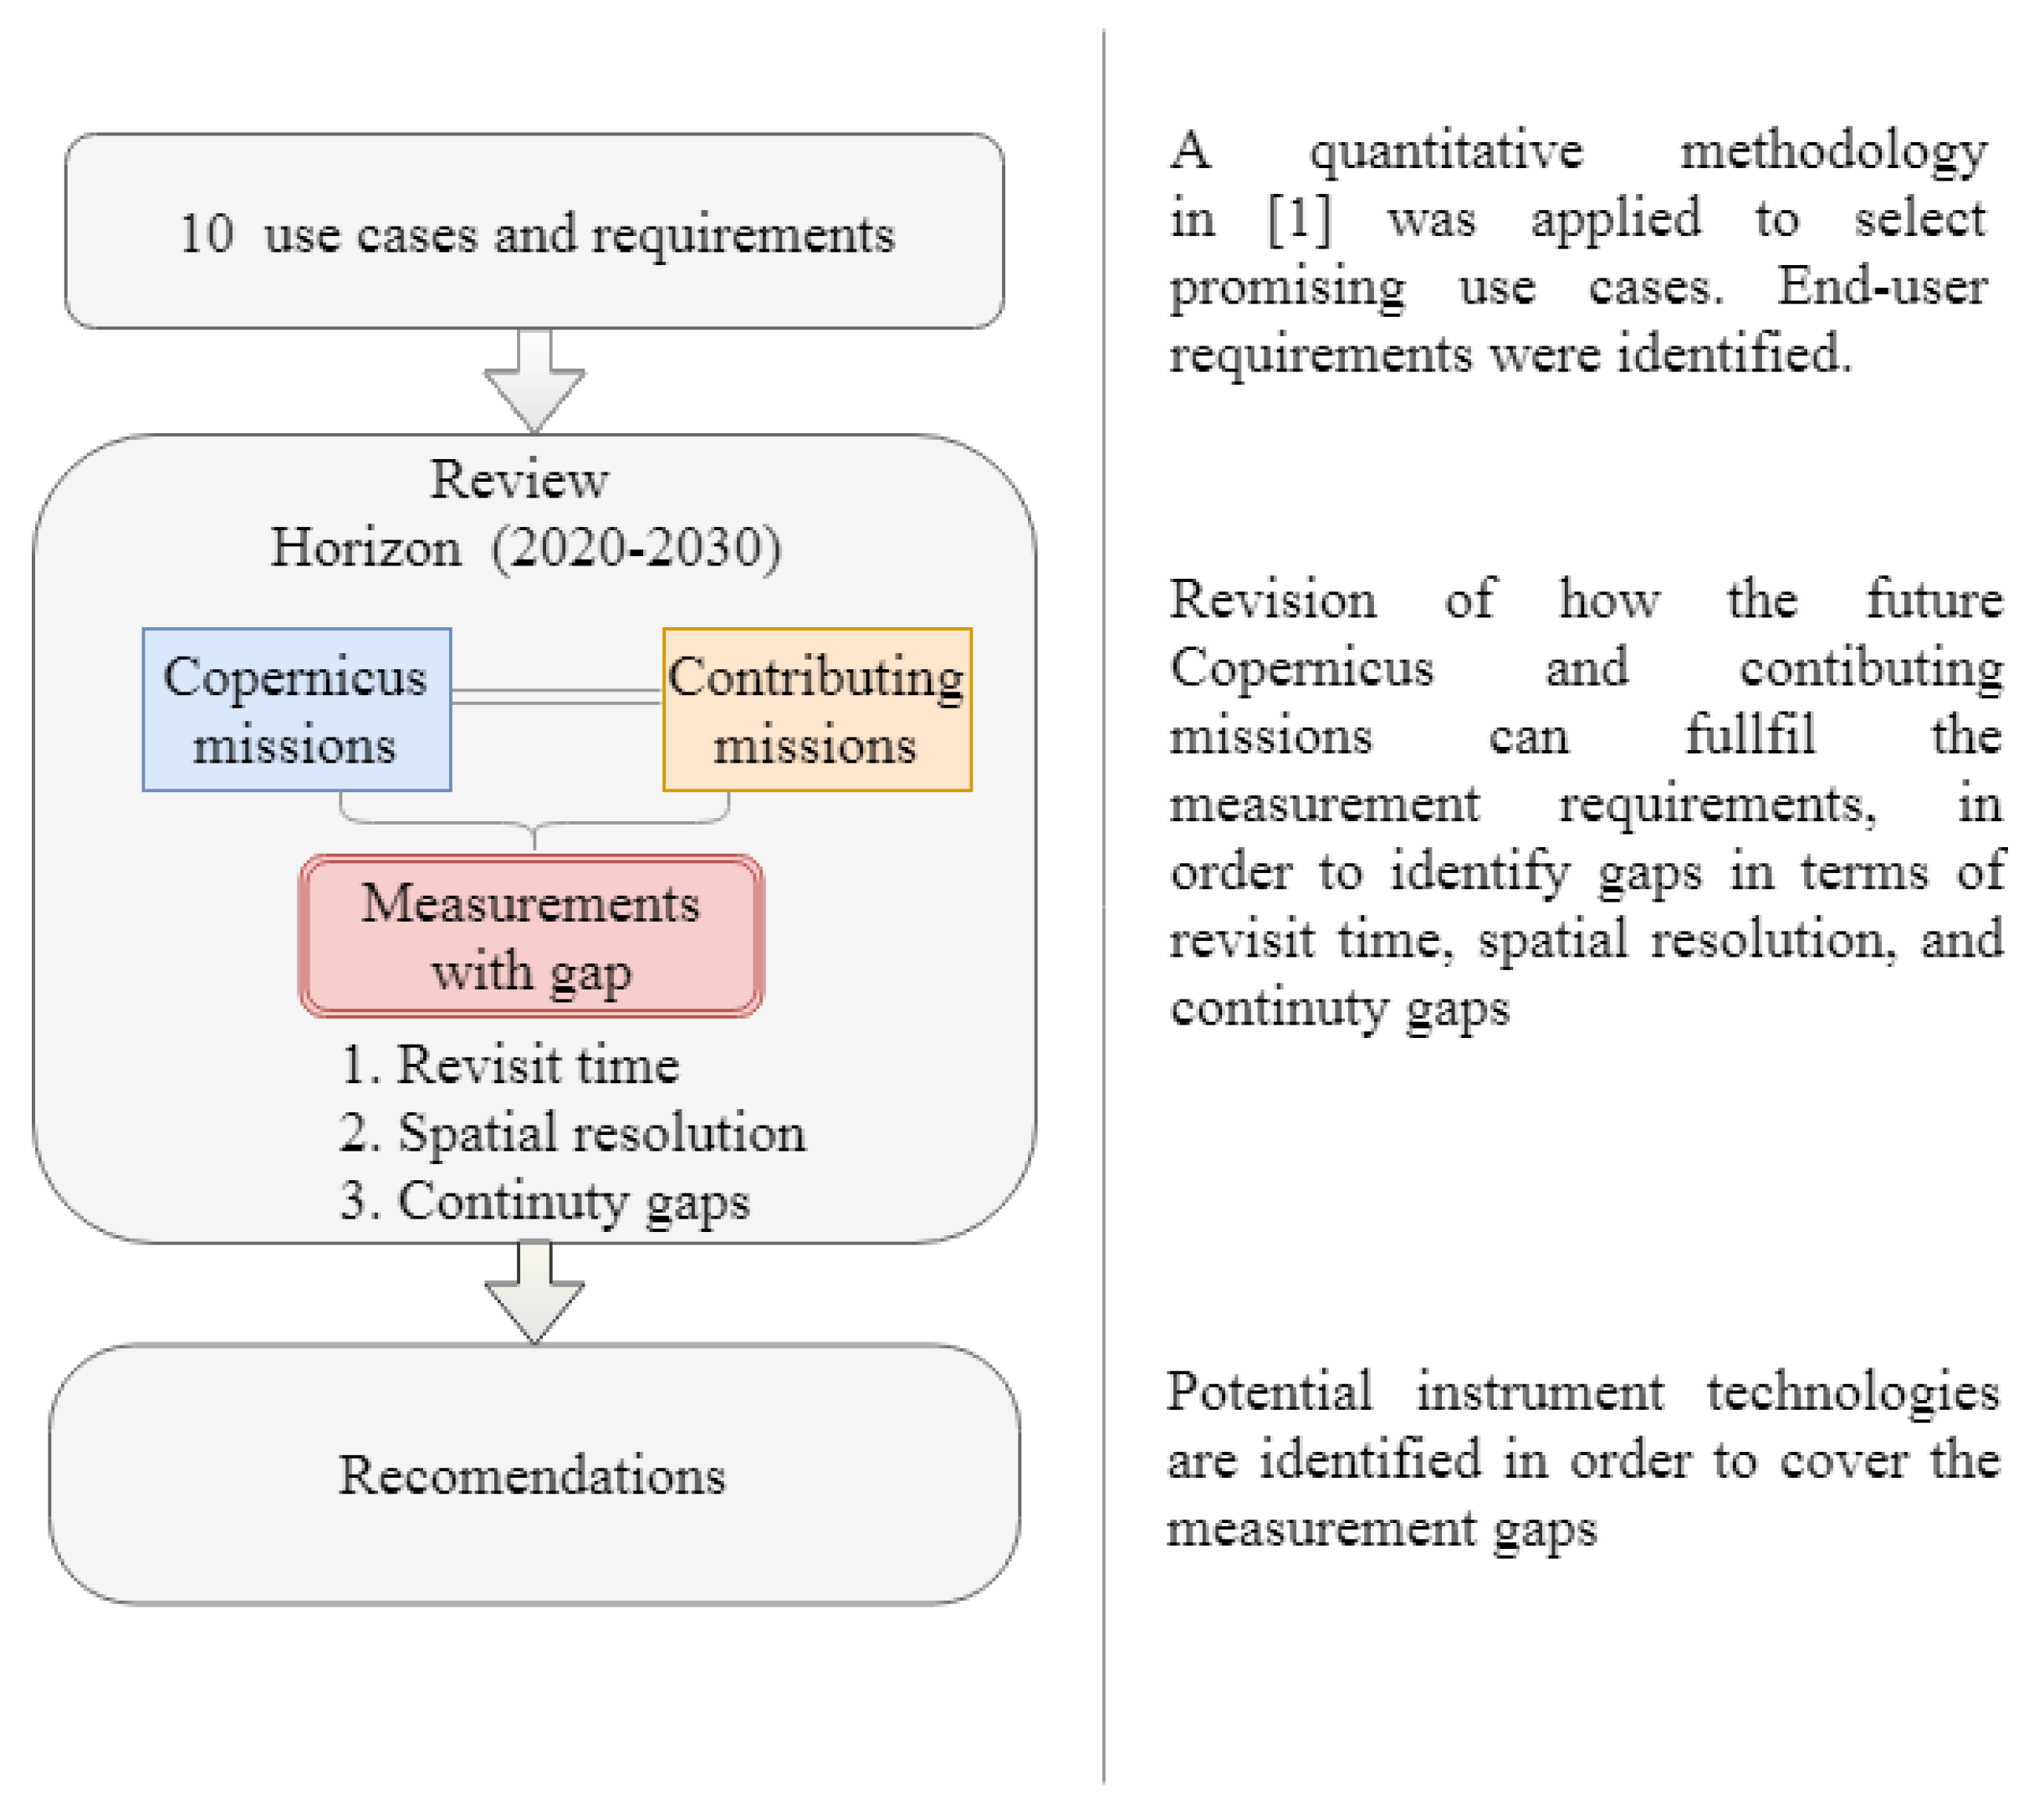 Remote Sensing Free Full Text Gaps Analysis And Requirements Specification For The Evolution Of Copernicus System For Polar Regions Monitoring Addressing The Challenges In The Horizon 2020 2030 Html